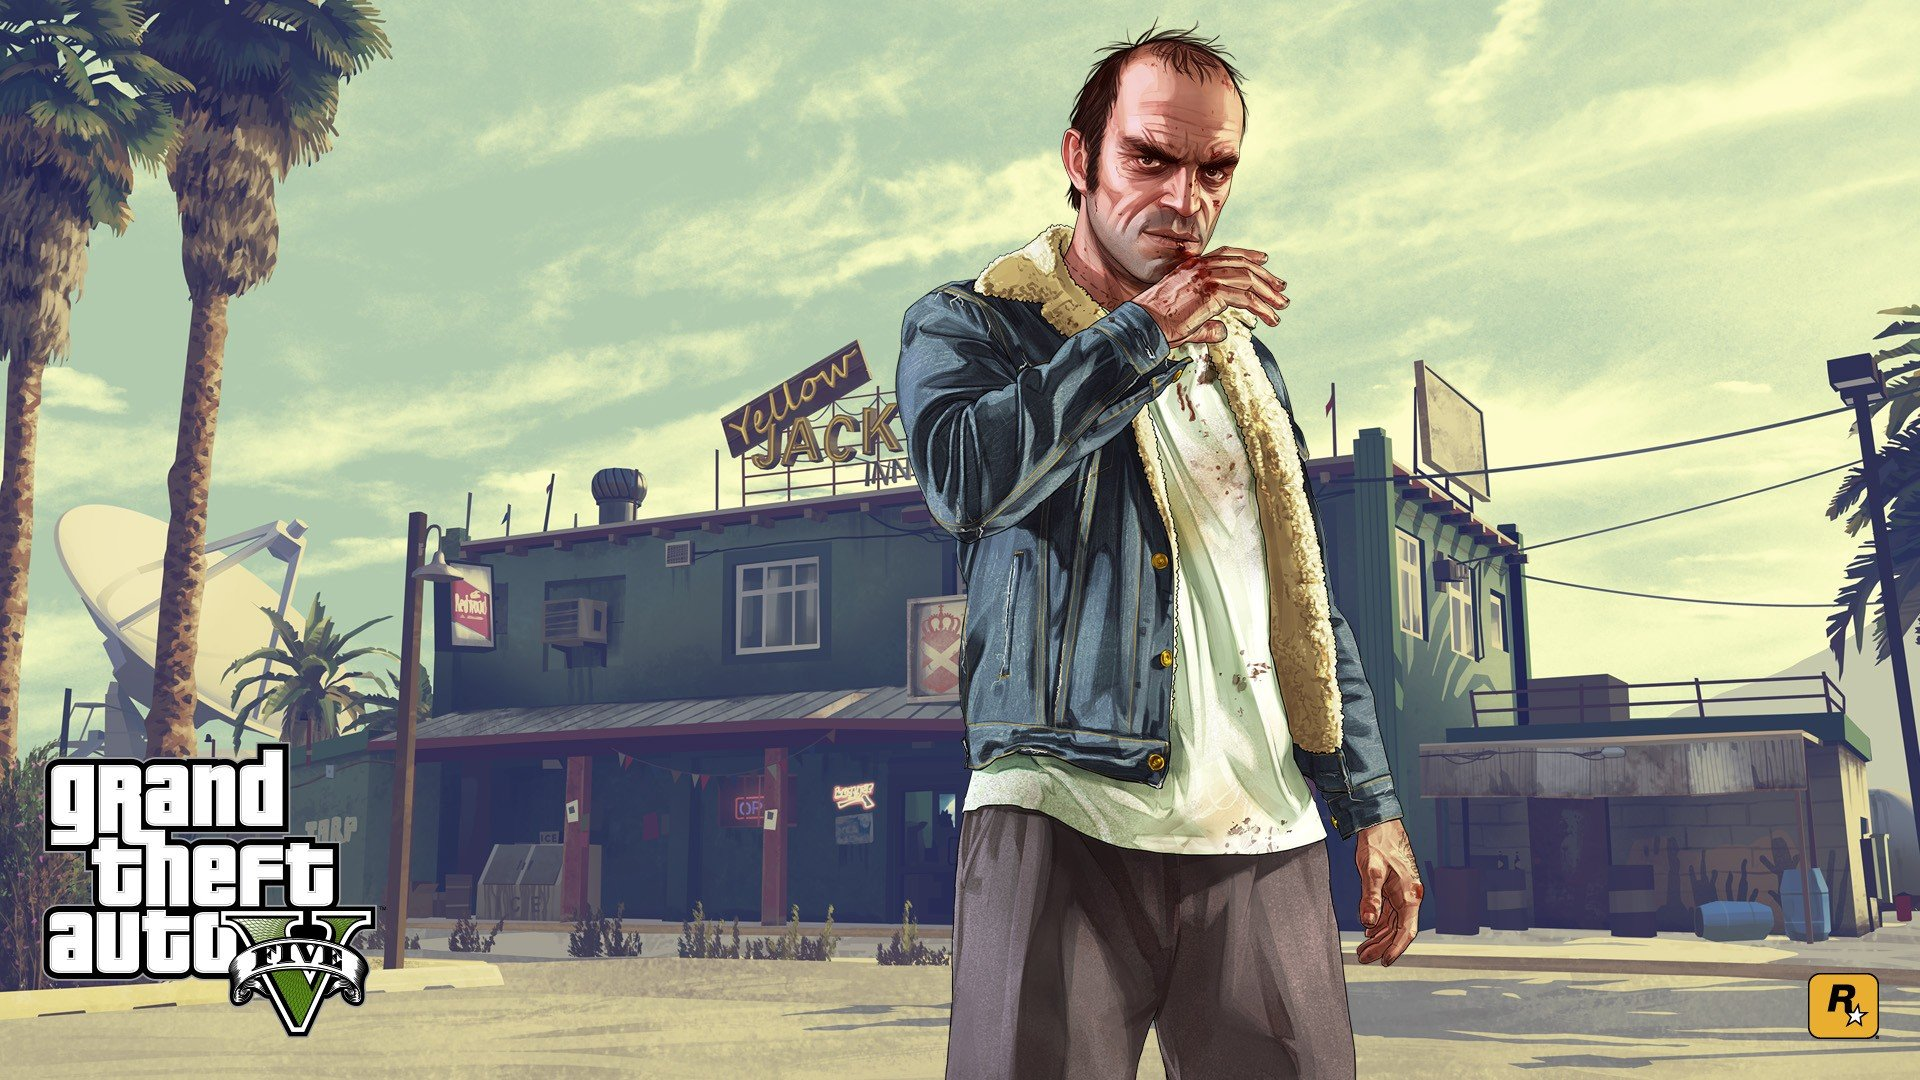 Trevor philips grand theft auto v grand theft auto - Gta v wallpaper ...